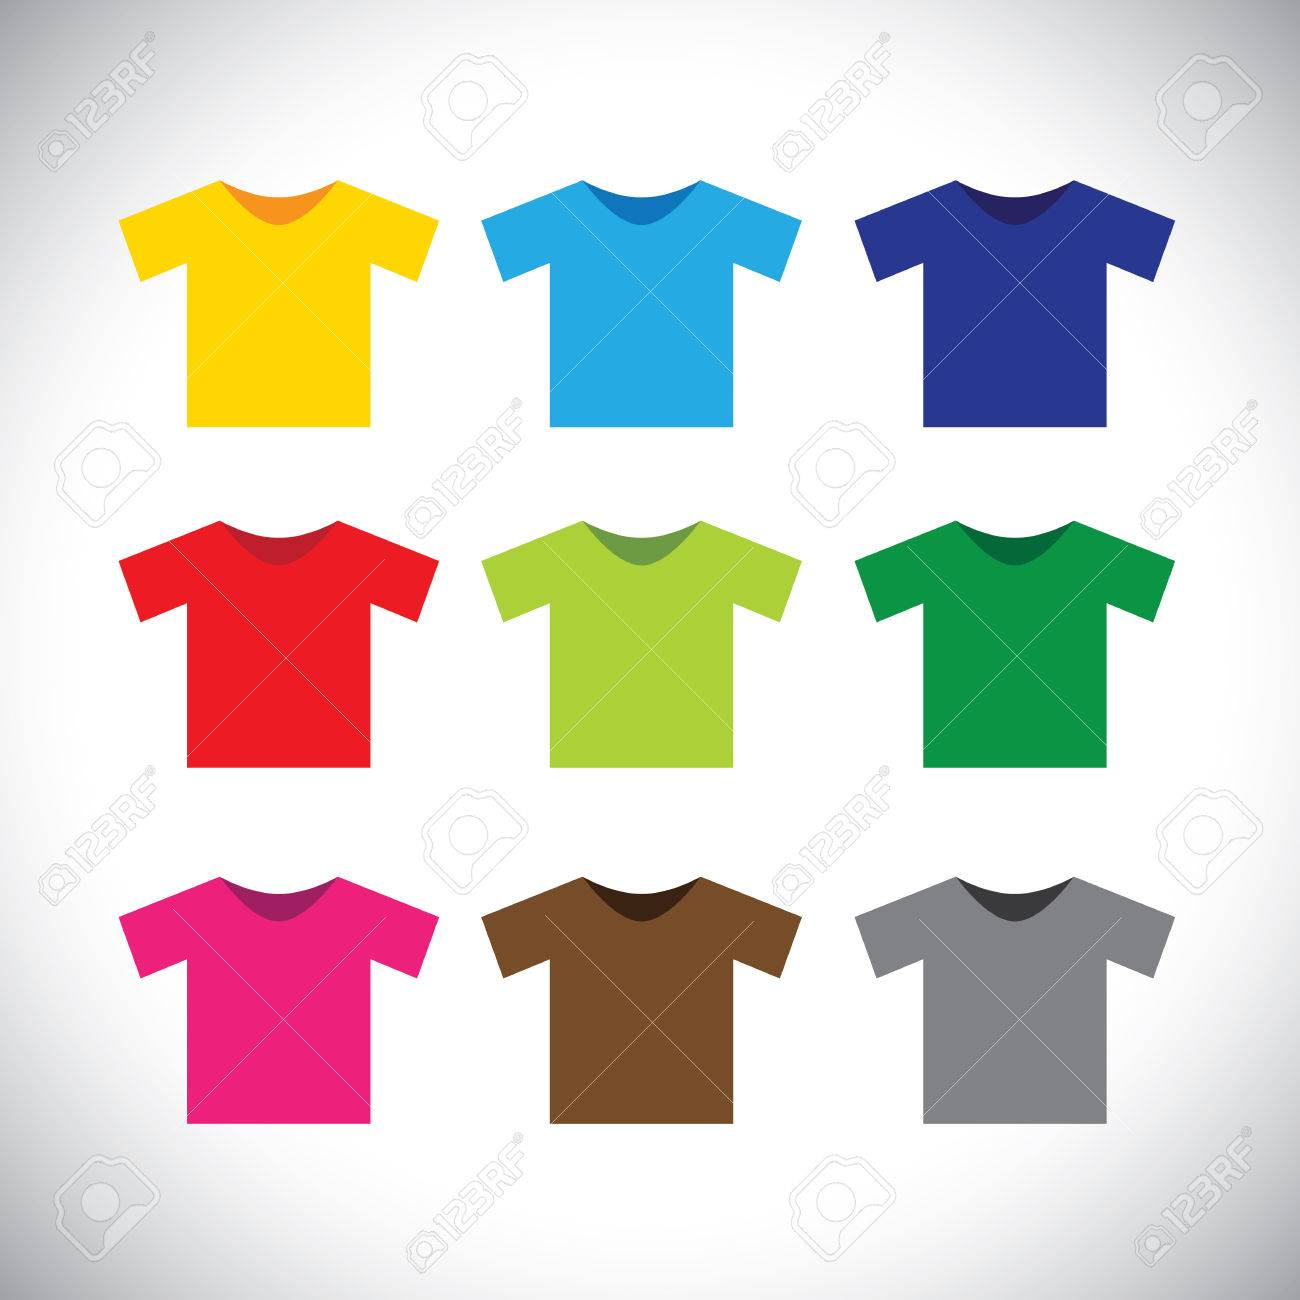 Black t shirt vector - Vector Colorful T Shirts Vector Icons This Graphic Consists Of Tee Shirts In Colors Like Red Orange Black Blue Green Yellow Pink And Other Bright